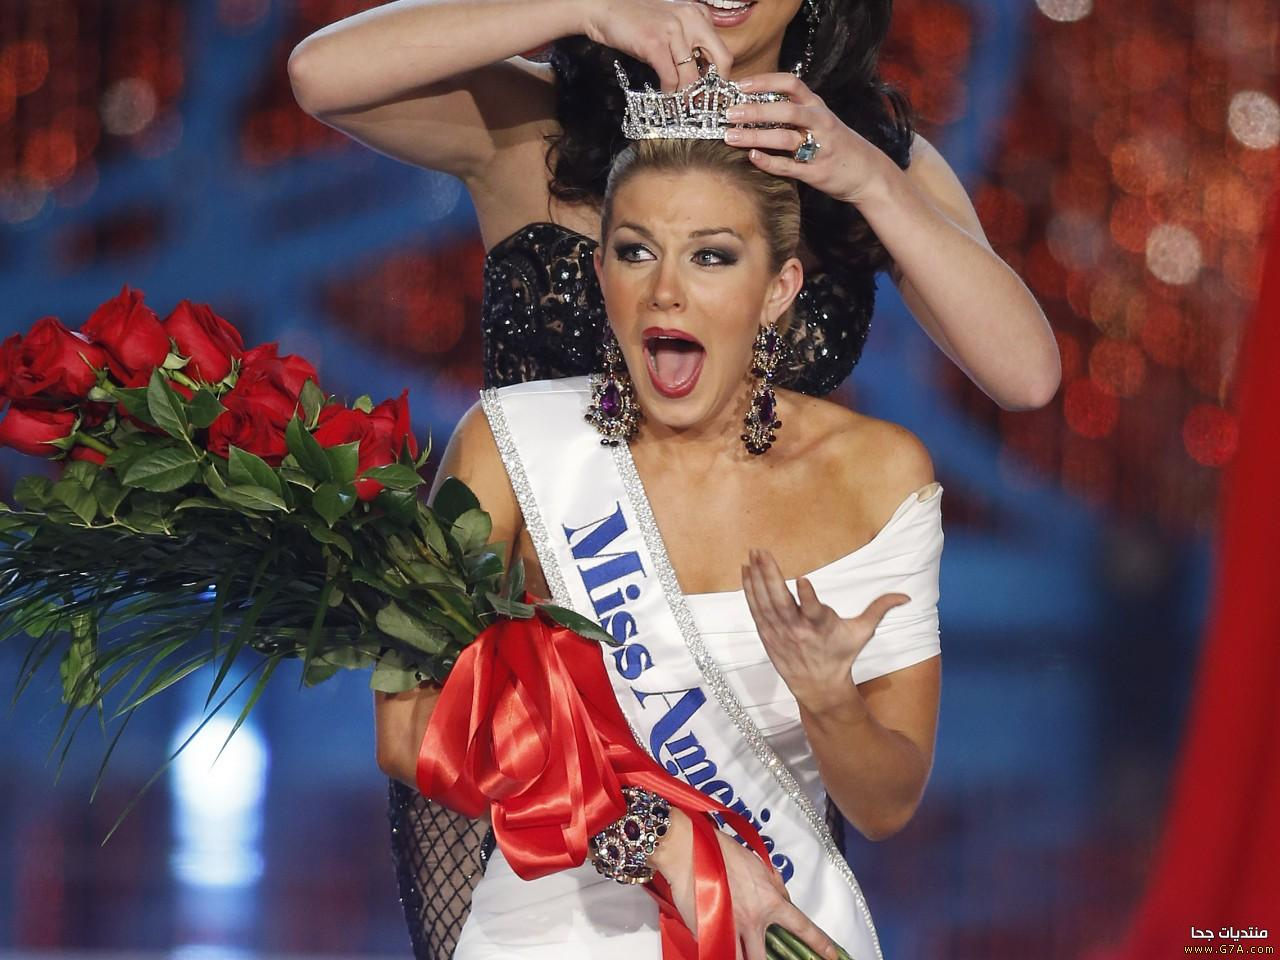 ��� ���� ���� ������ 2016 ���� ����� ��� ����� ���� ������ Miss America 2017 images